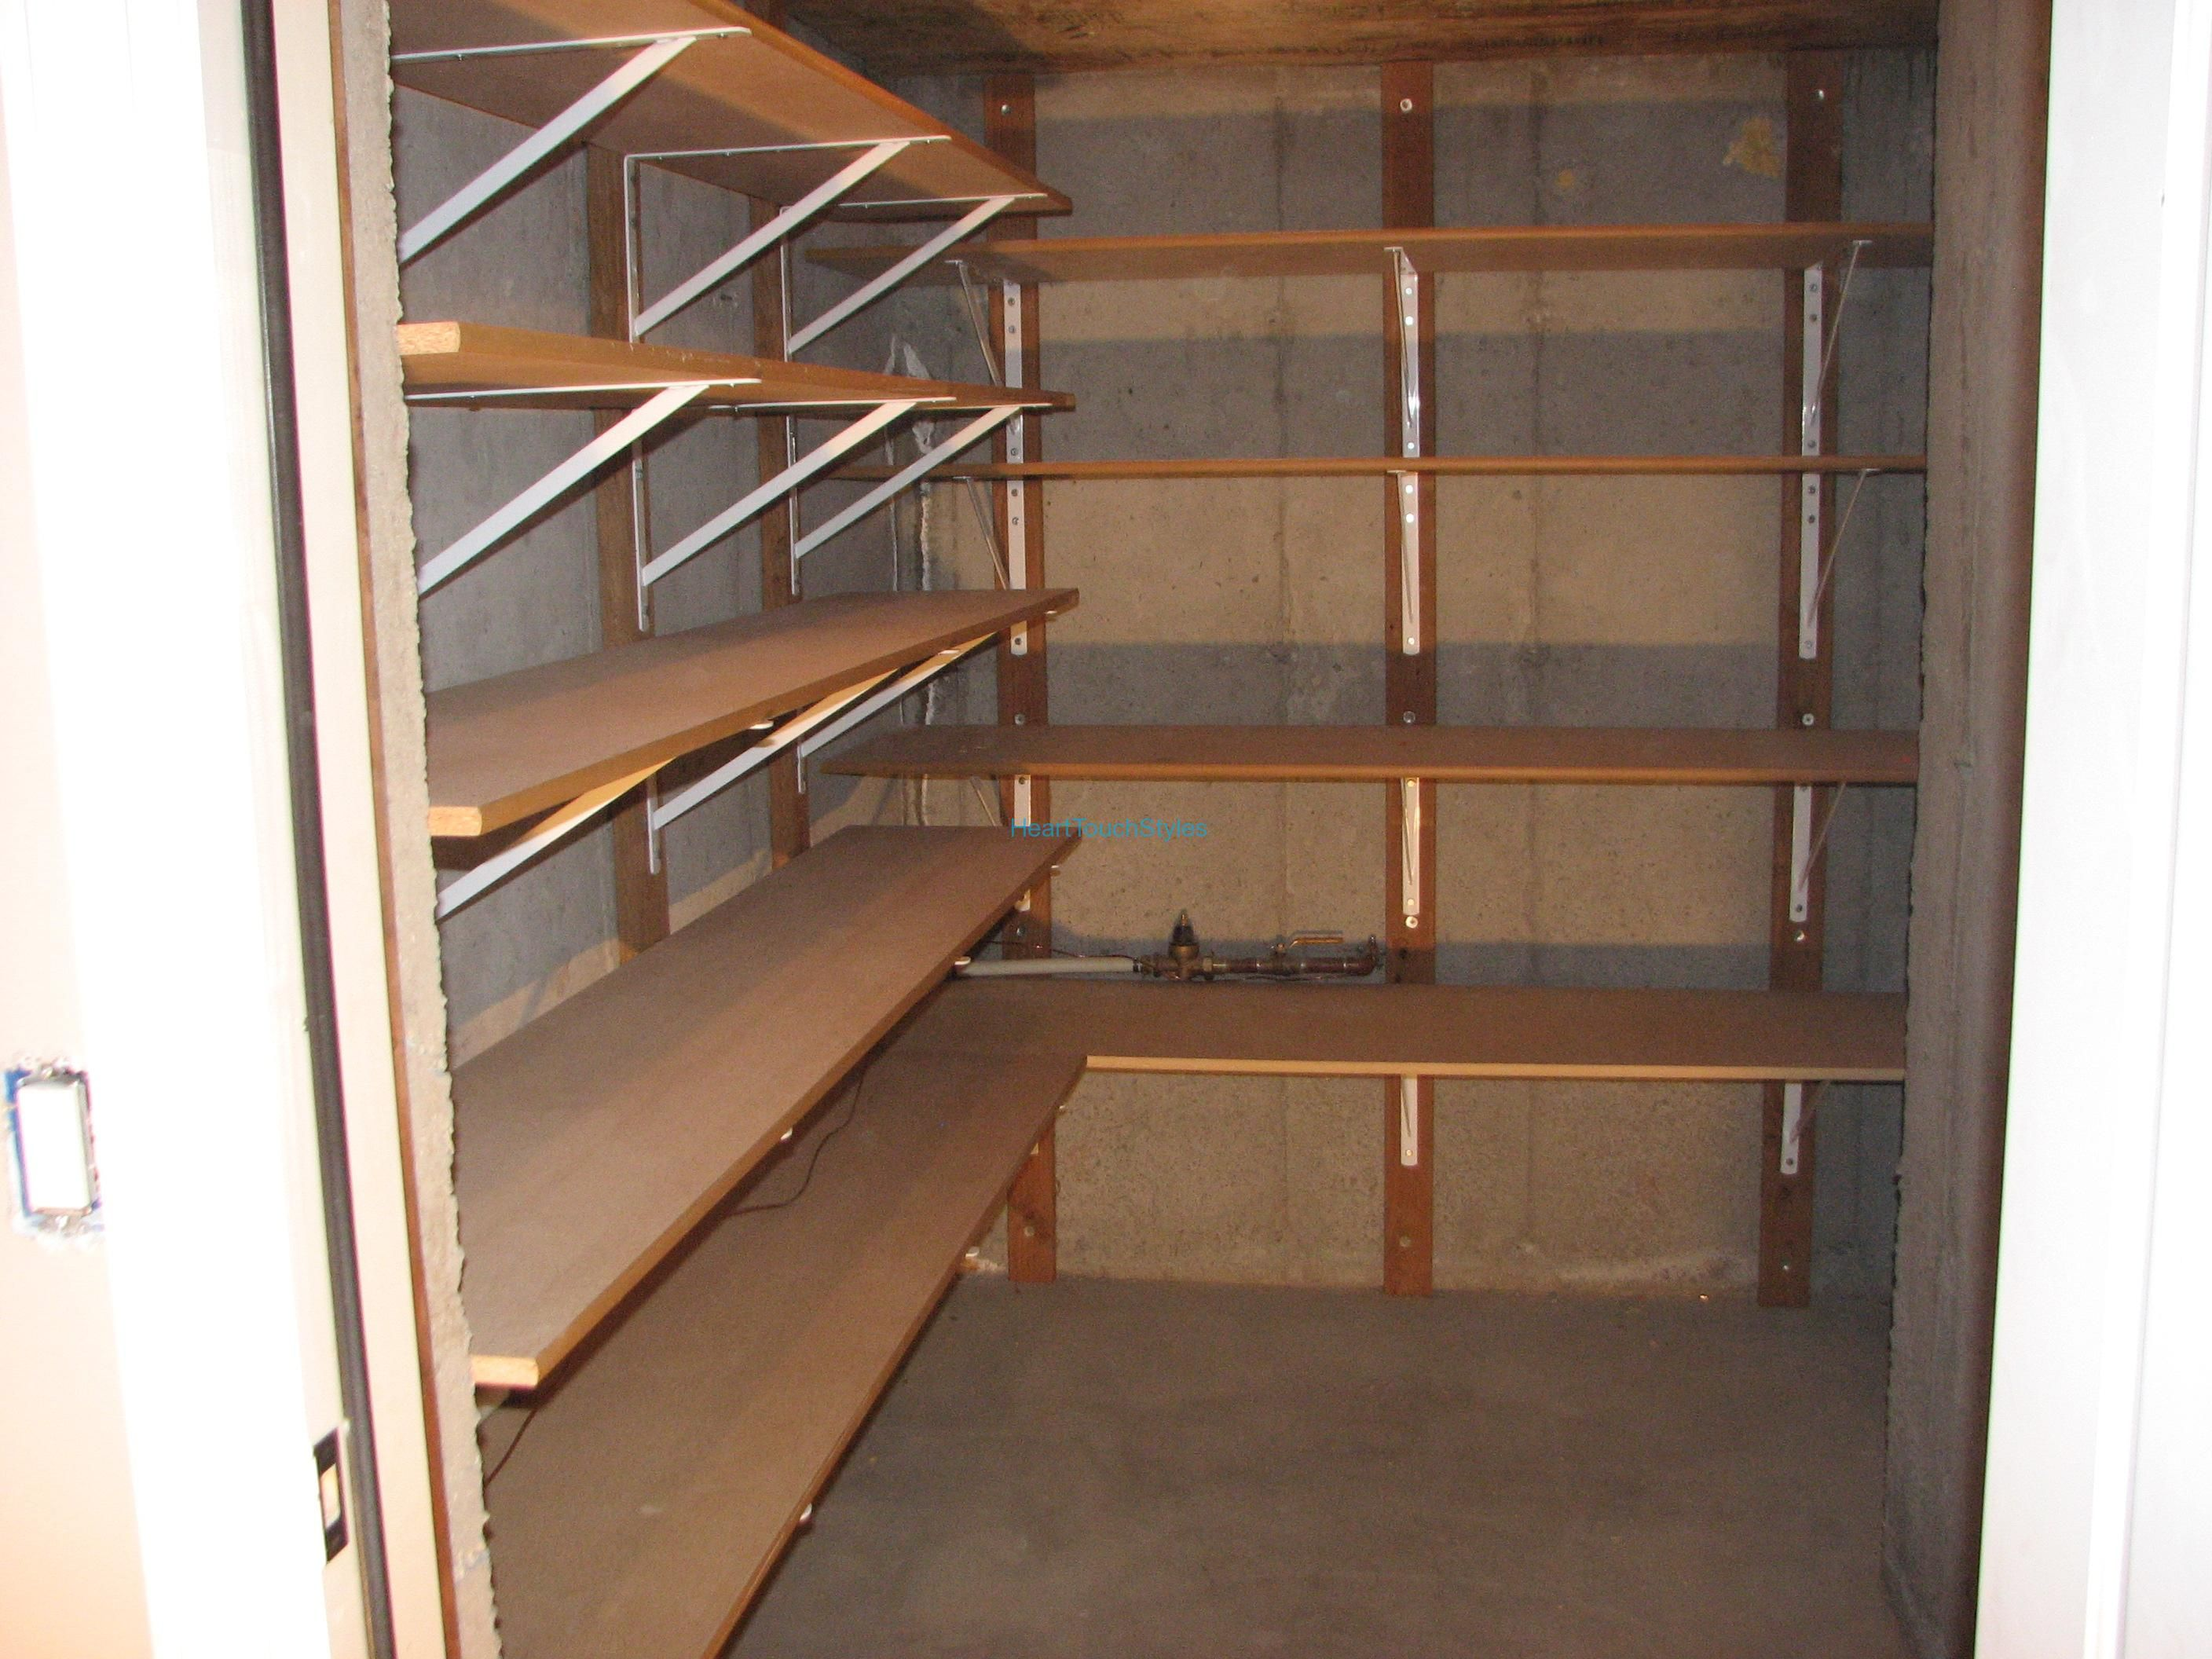 Superior Store Room Design Ideas Part - 6: Storage Room Shelving Design - Googleu0027da Ara